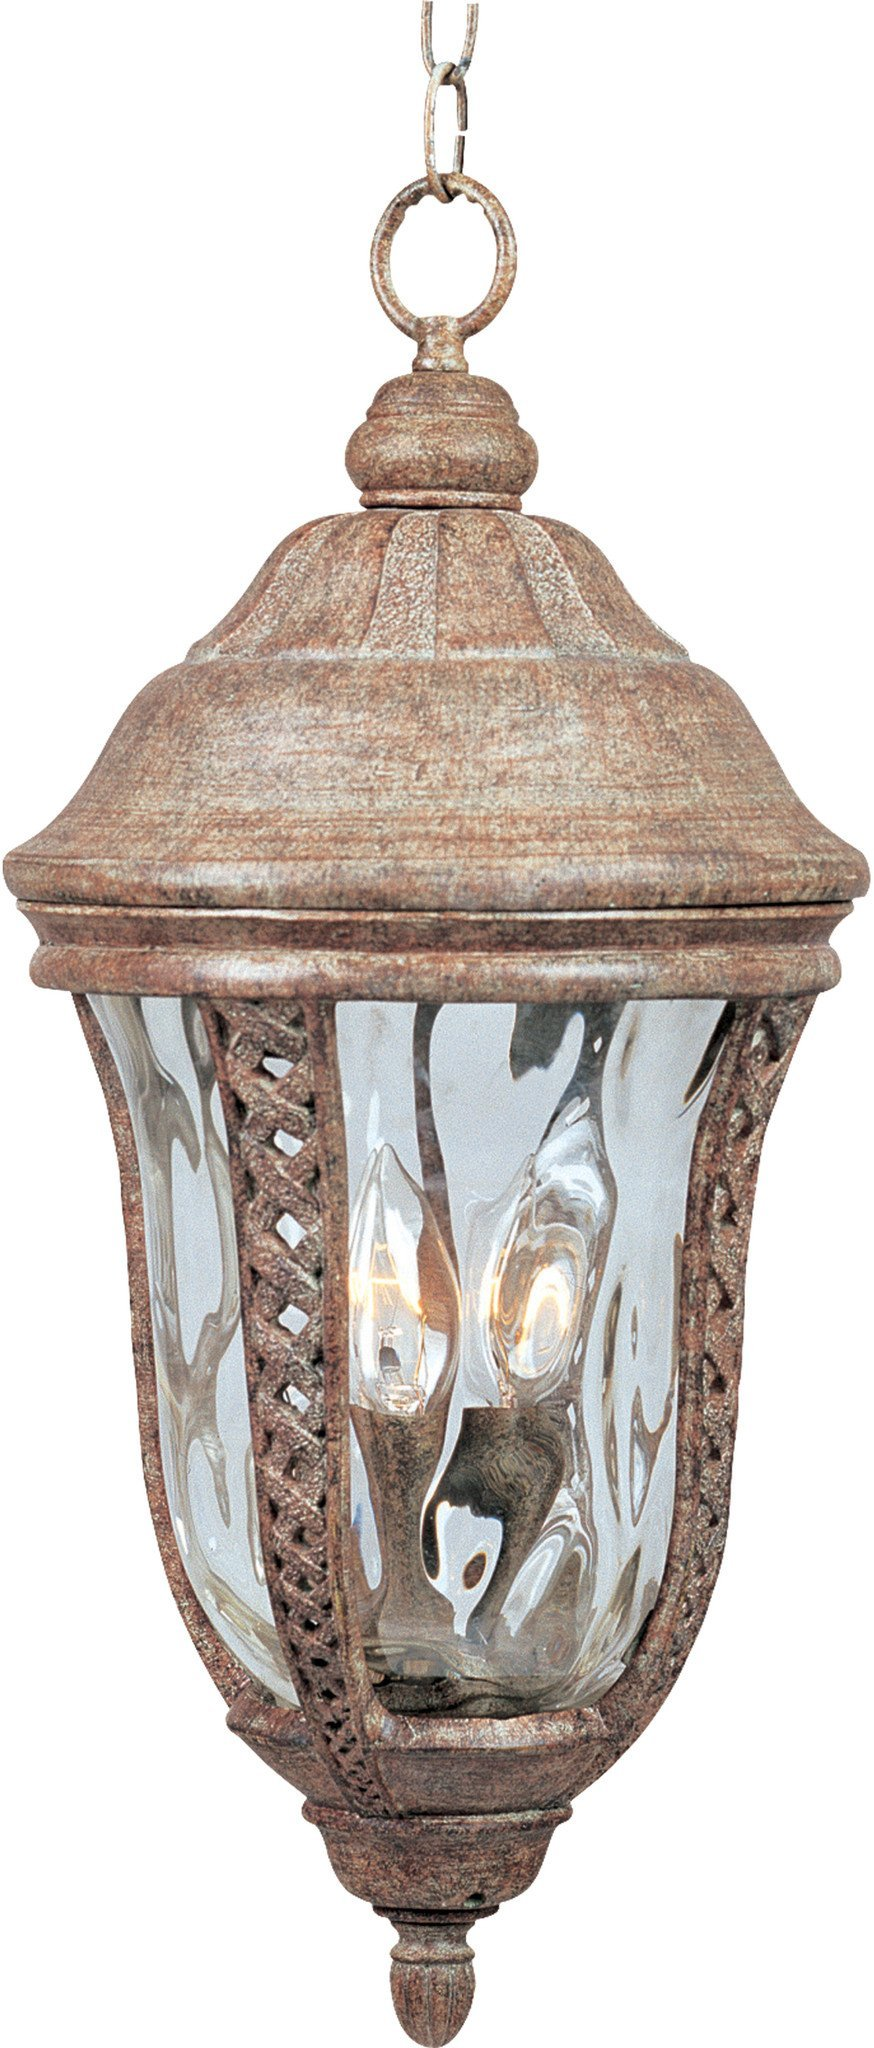 40210WGET Maxim Whittier VX 3-Light Outdoor Hanging Lantern